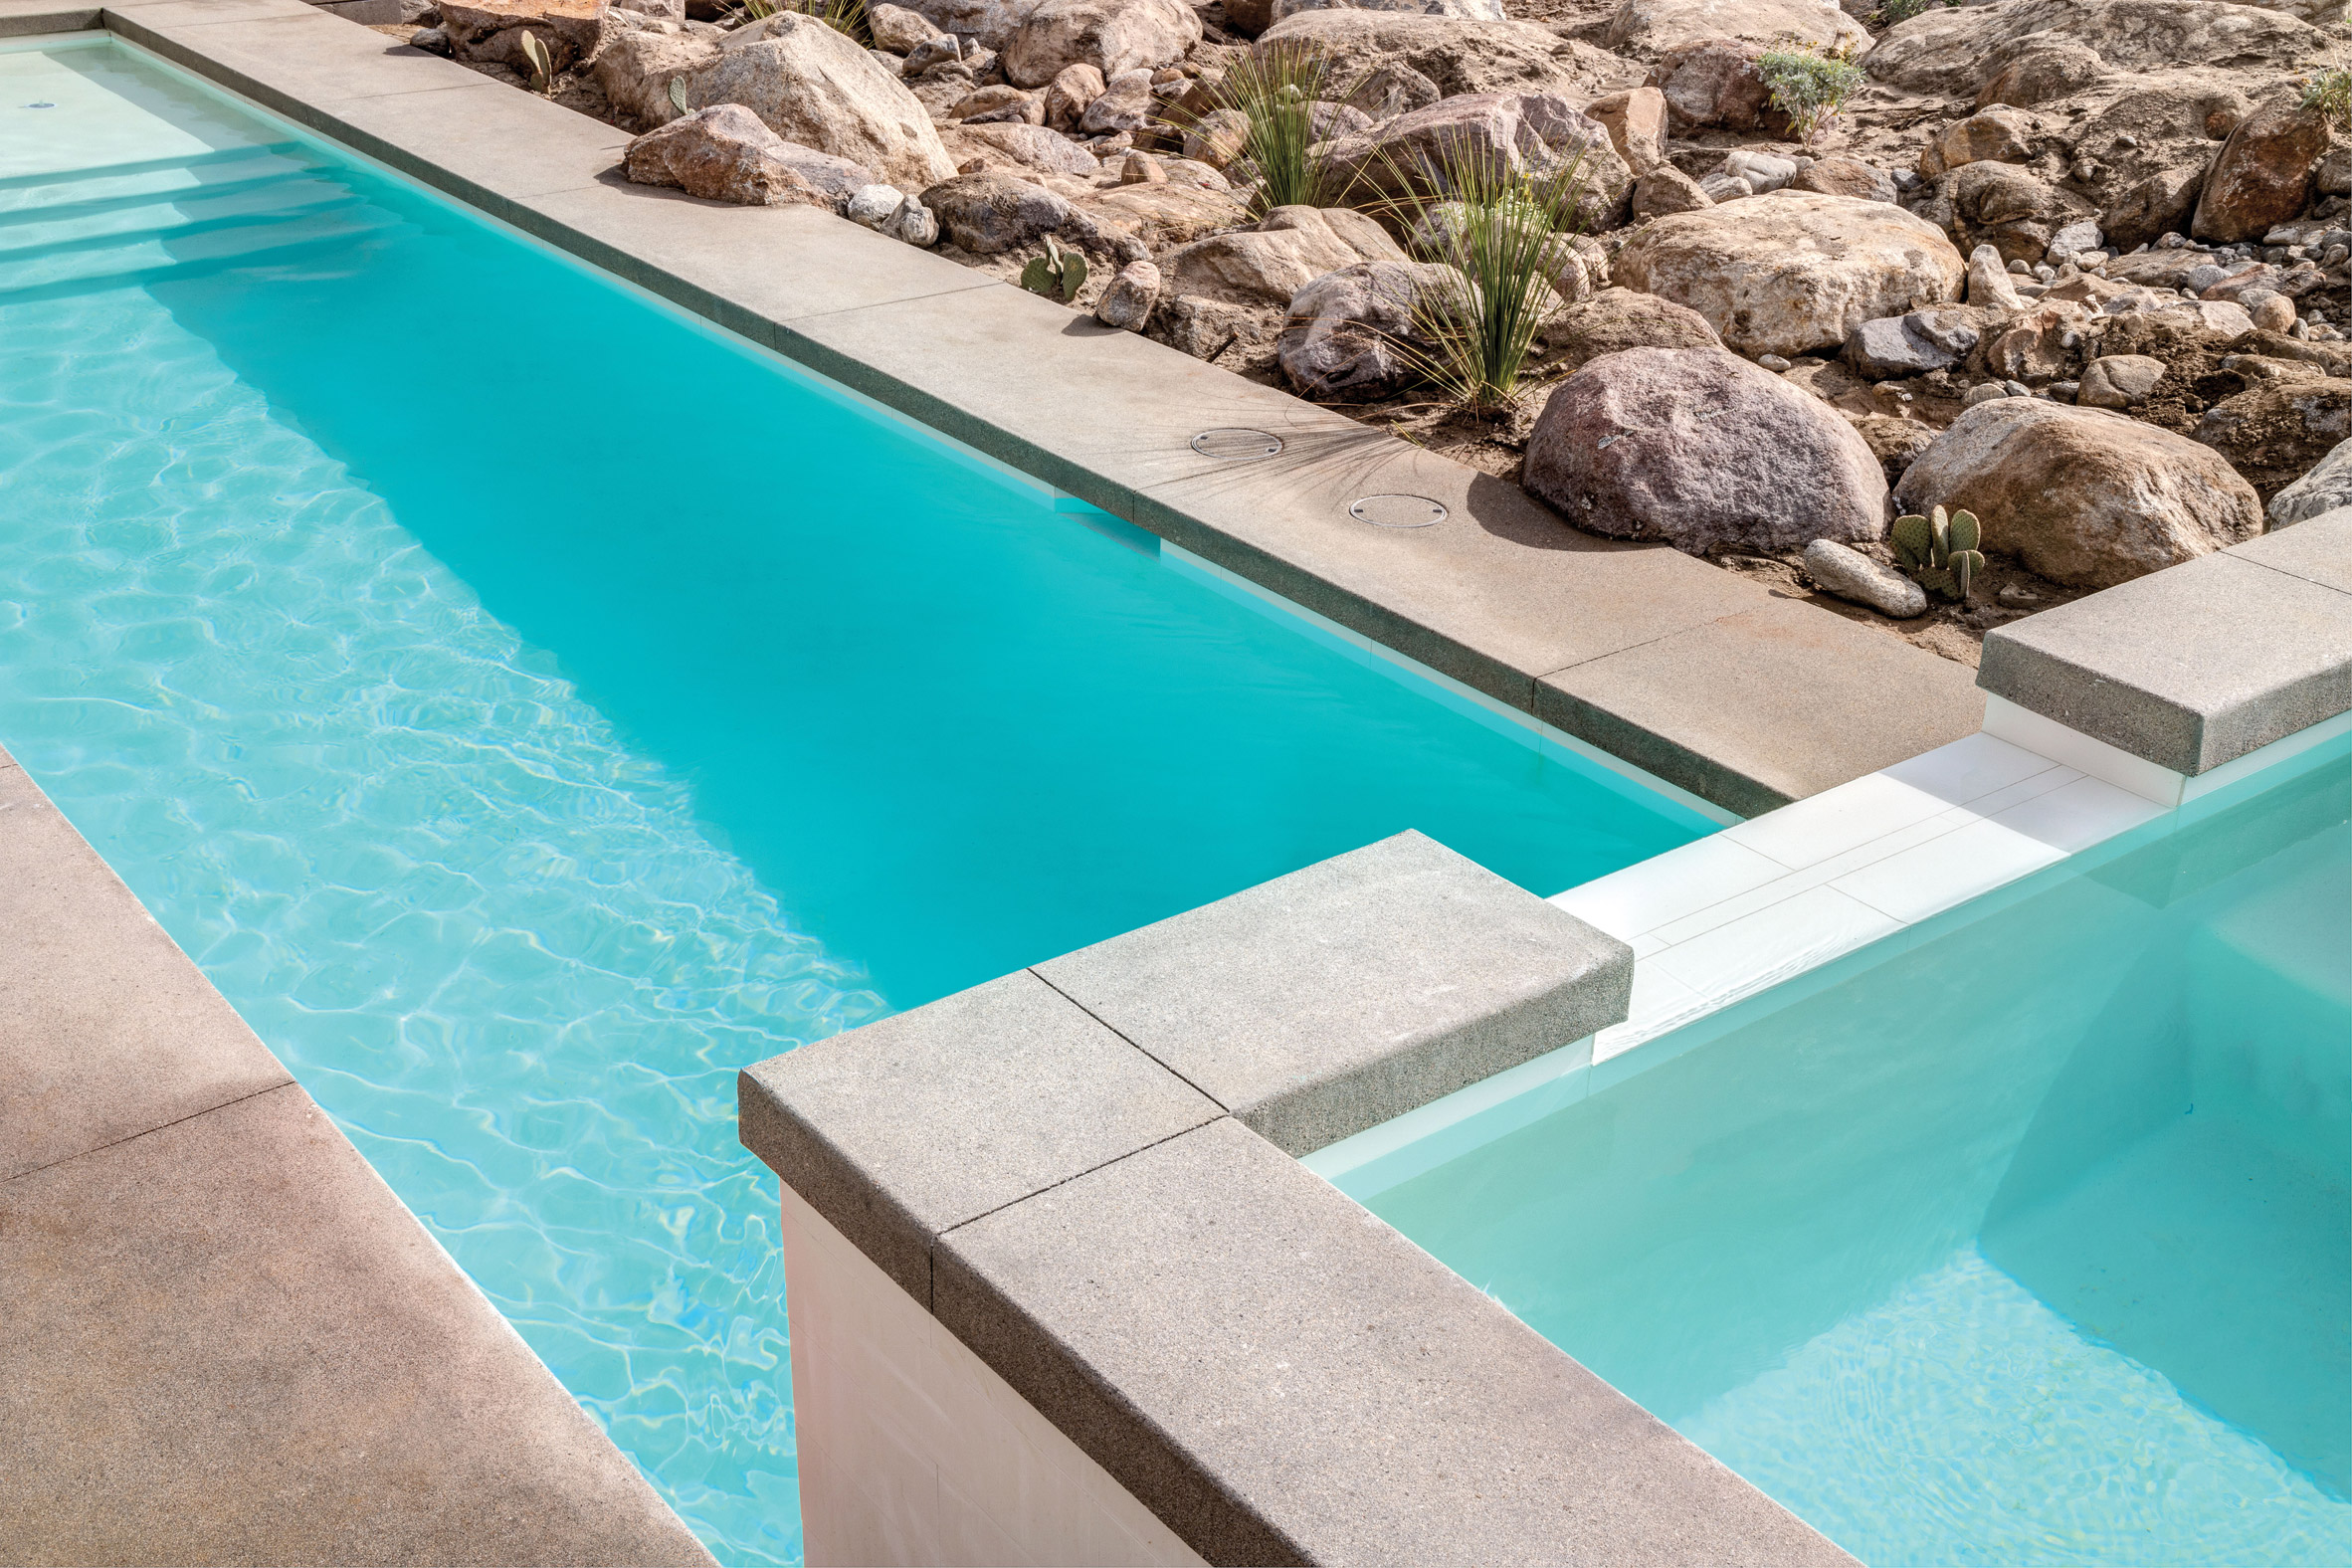 Pool in Palm Springs Chino Canyon home by Lance O'Donnell of o2 Architecture